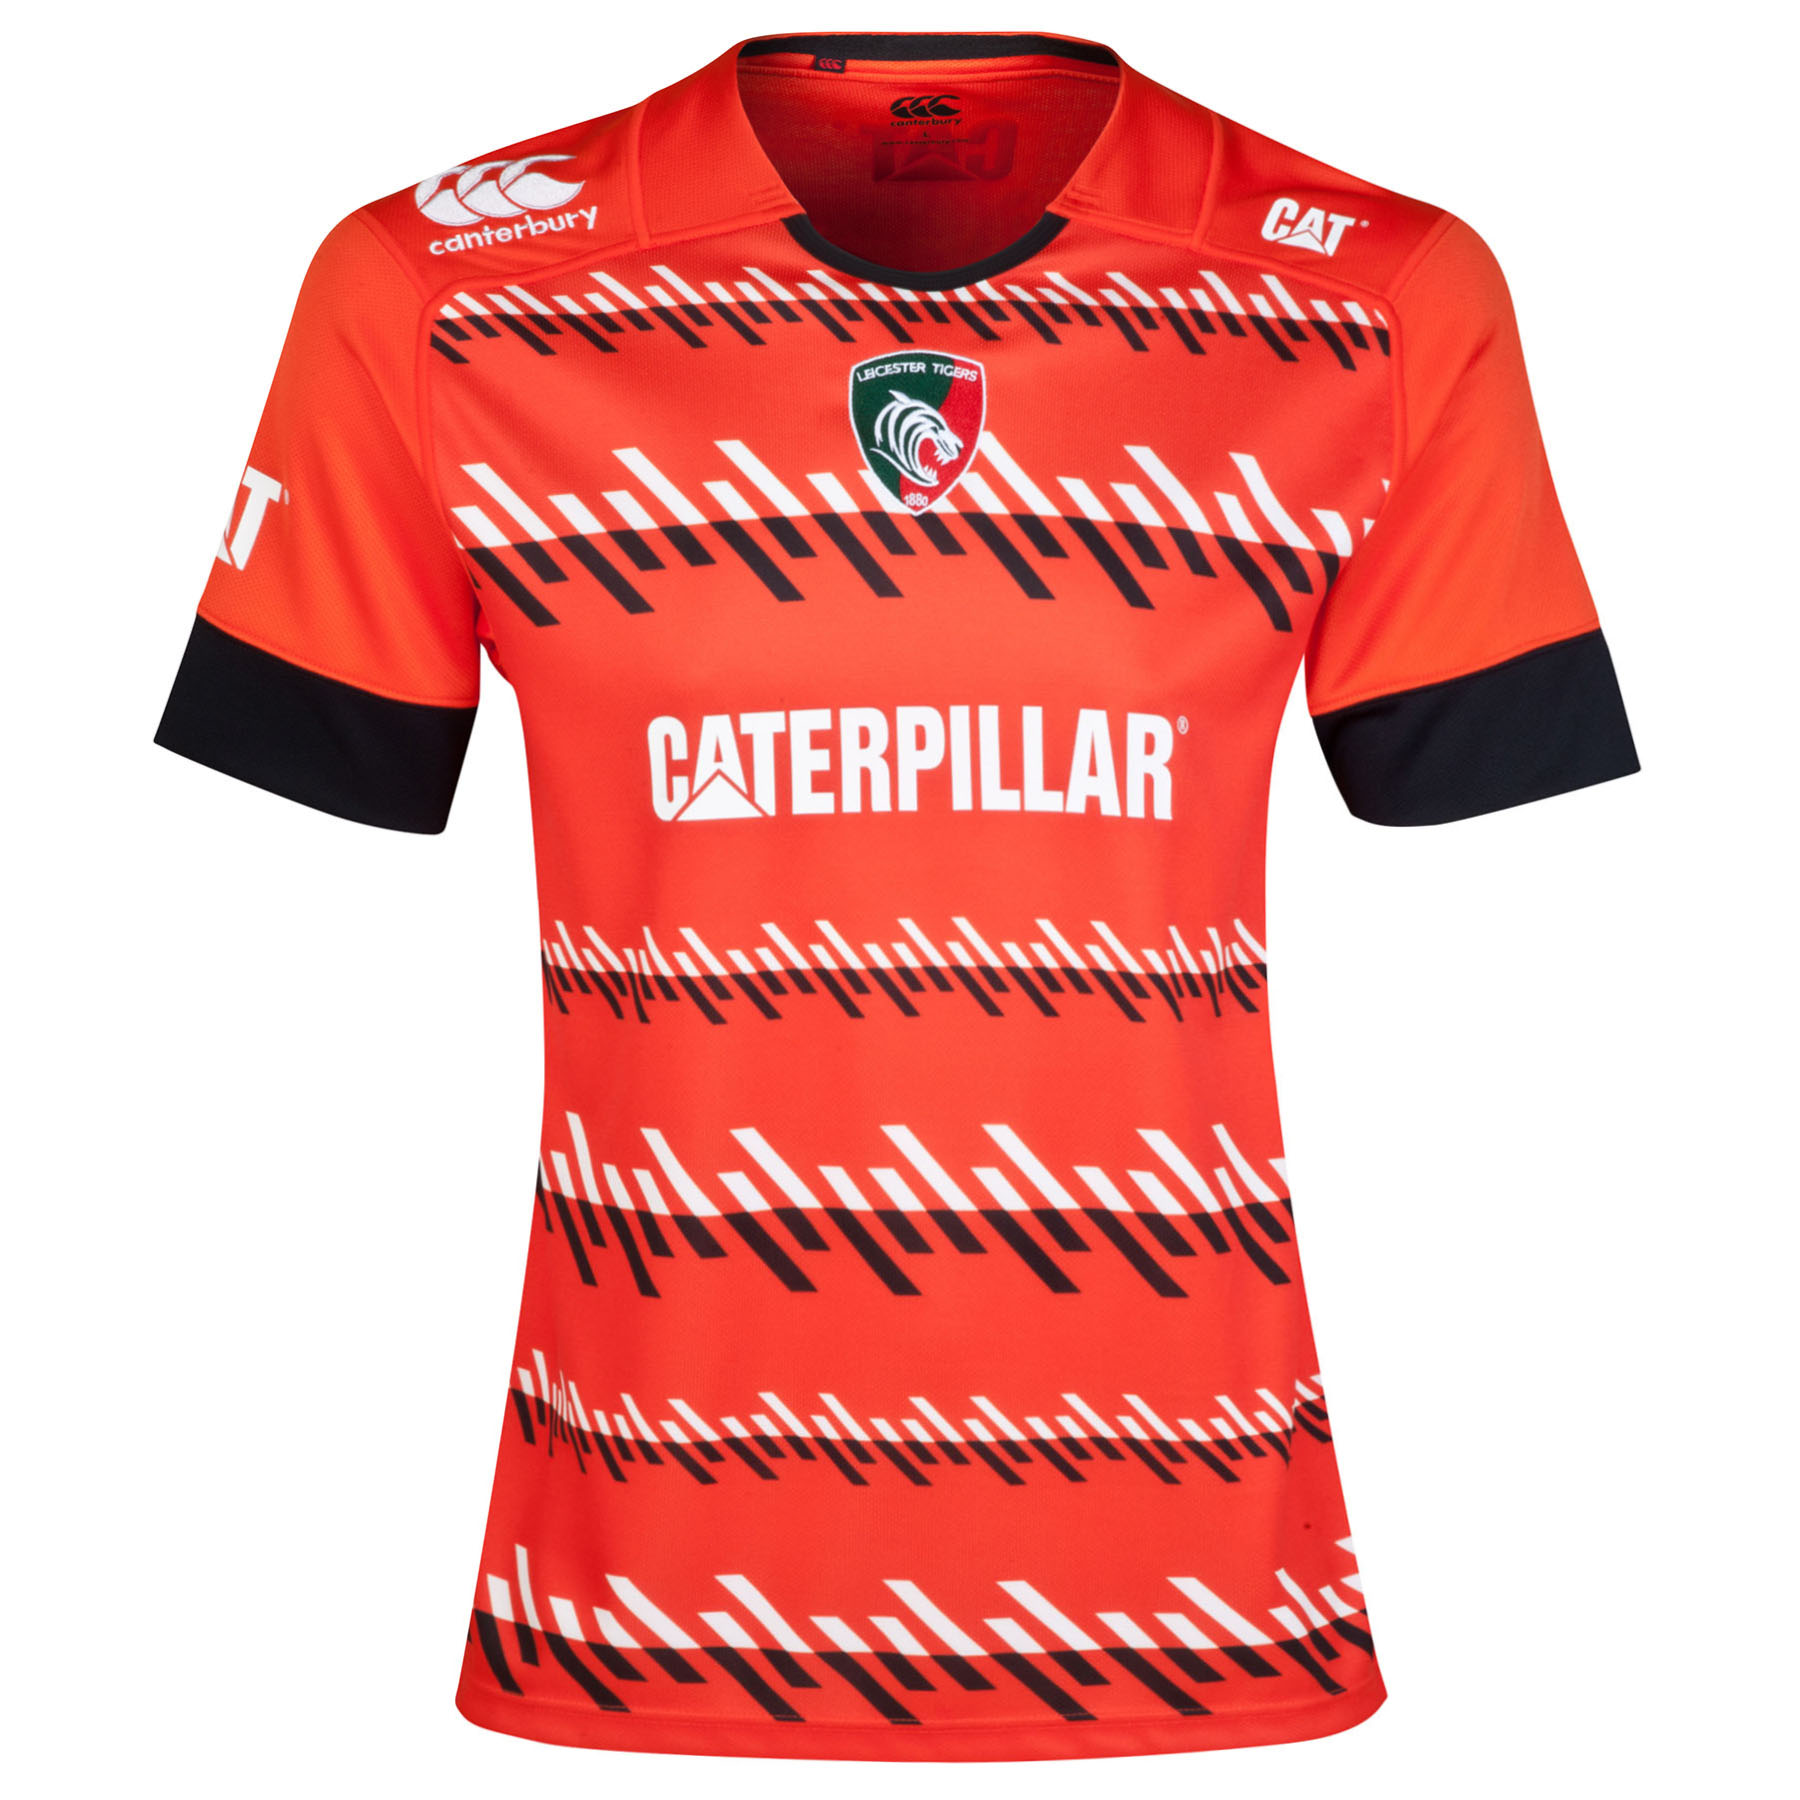 Leicester Tigers Alternate Pro Jersey 2014/15 - Womens Orange